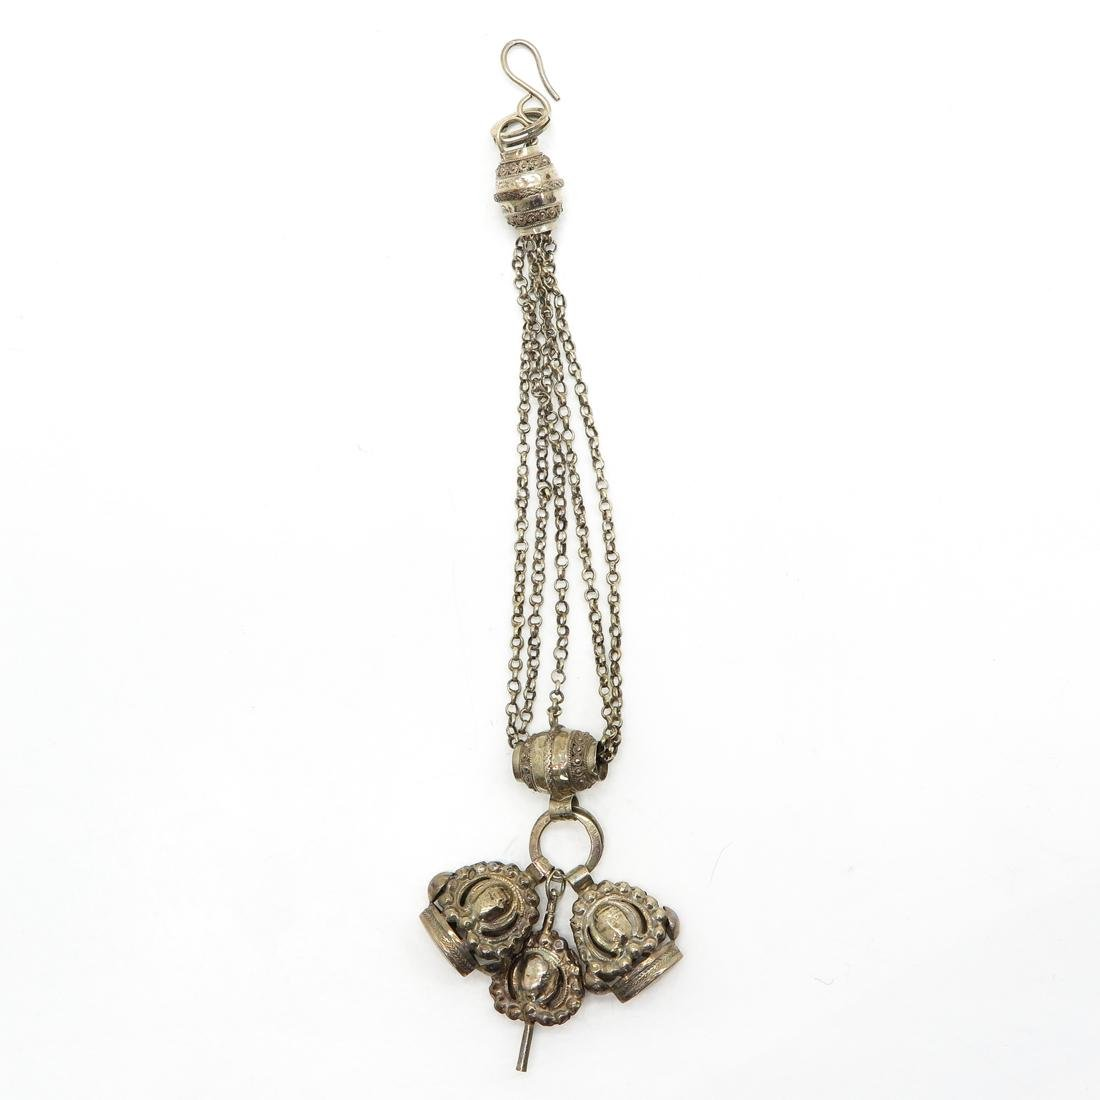 19th Century Dutch Silver Watch Chain with Key and Fobs